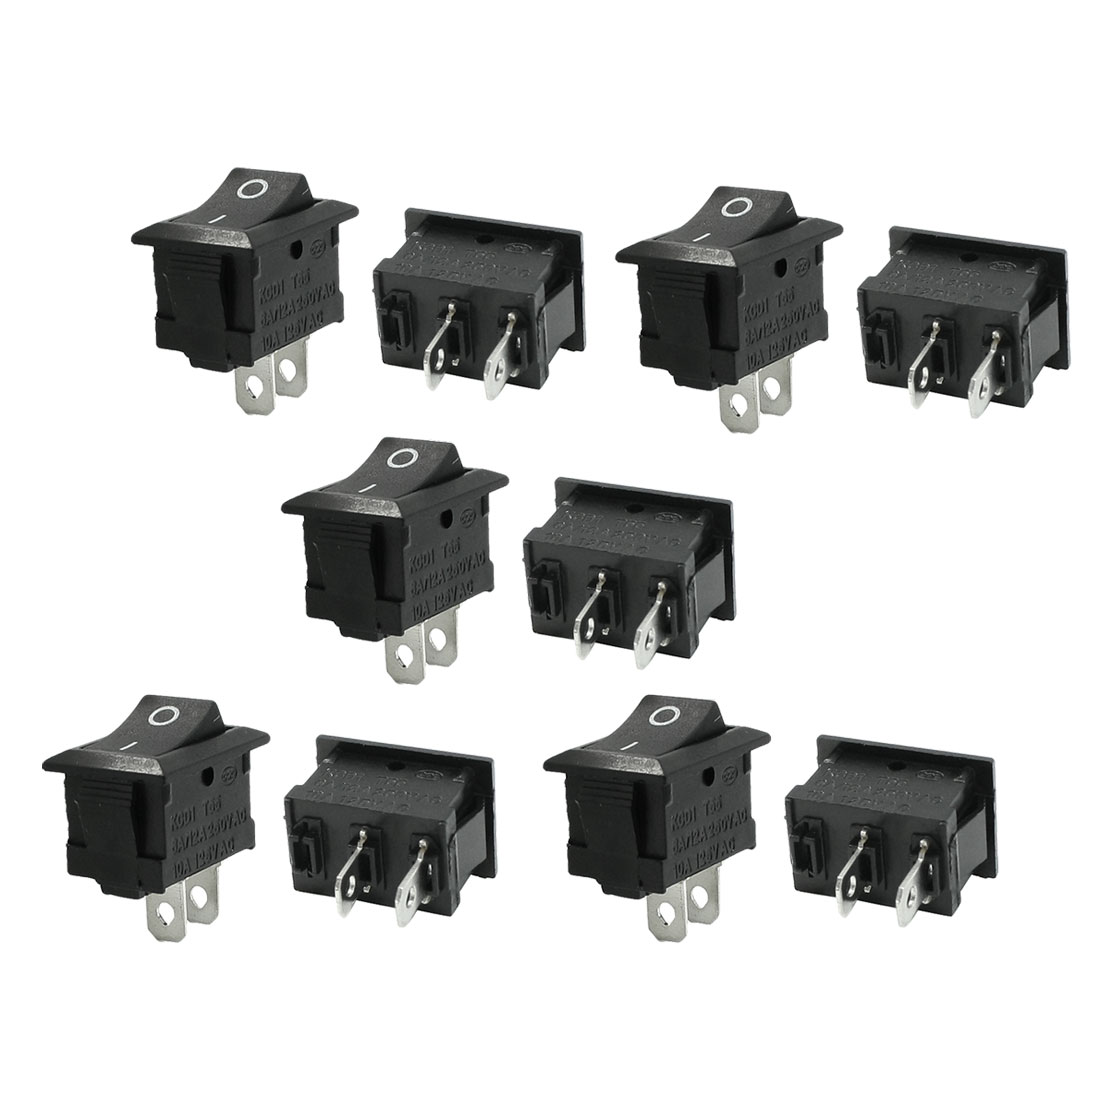 6A/12A 250VAC 10A 125VAC SPST Plastic Shell I/O Boat Rocker Switch 10 Pcs